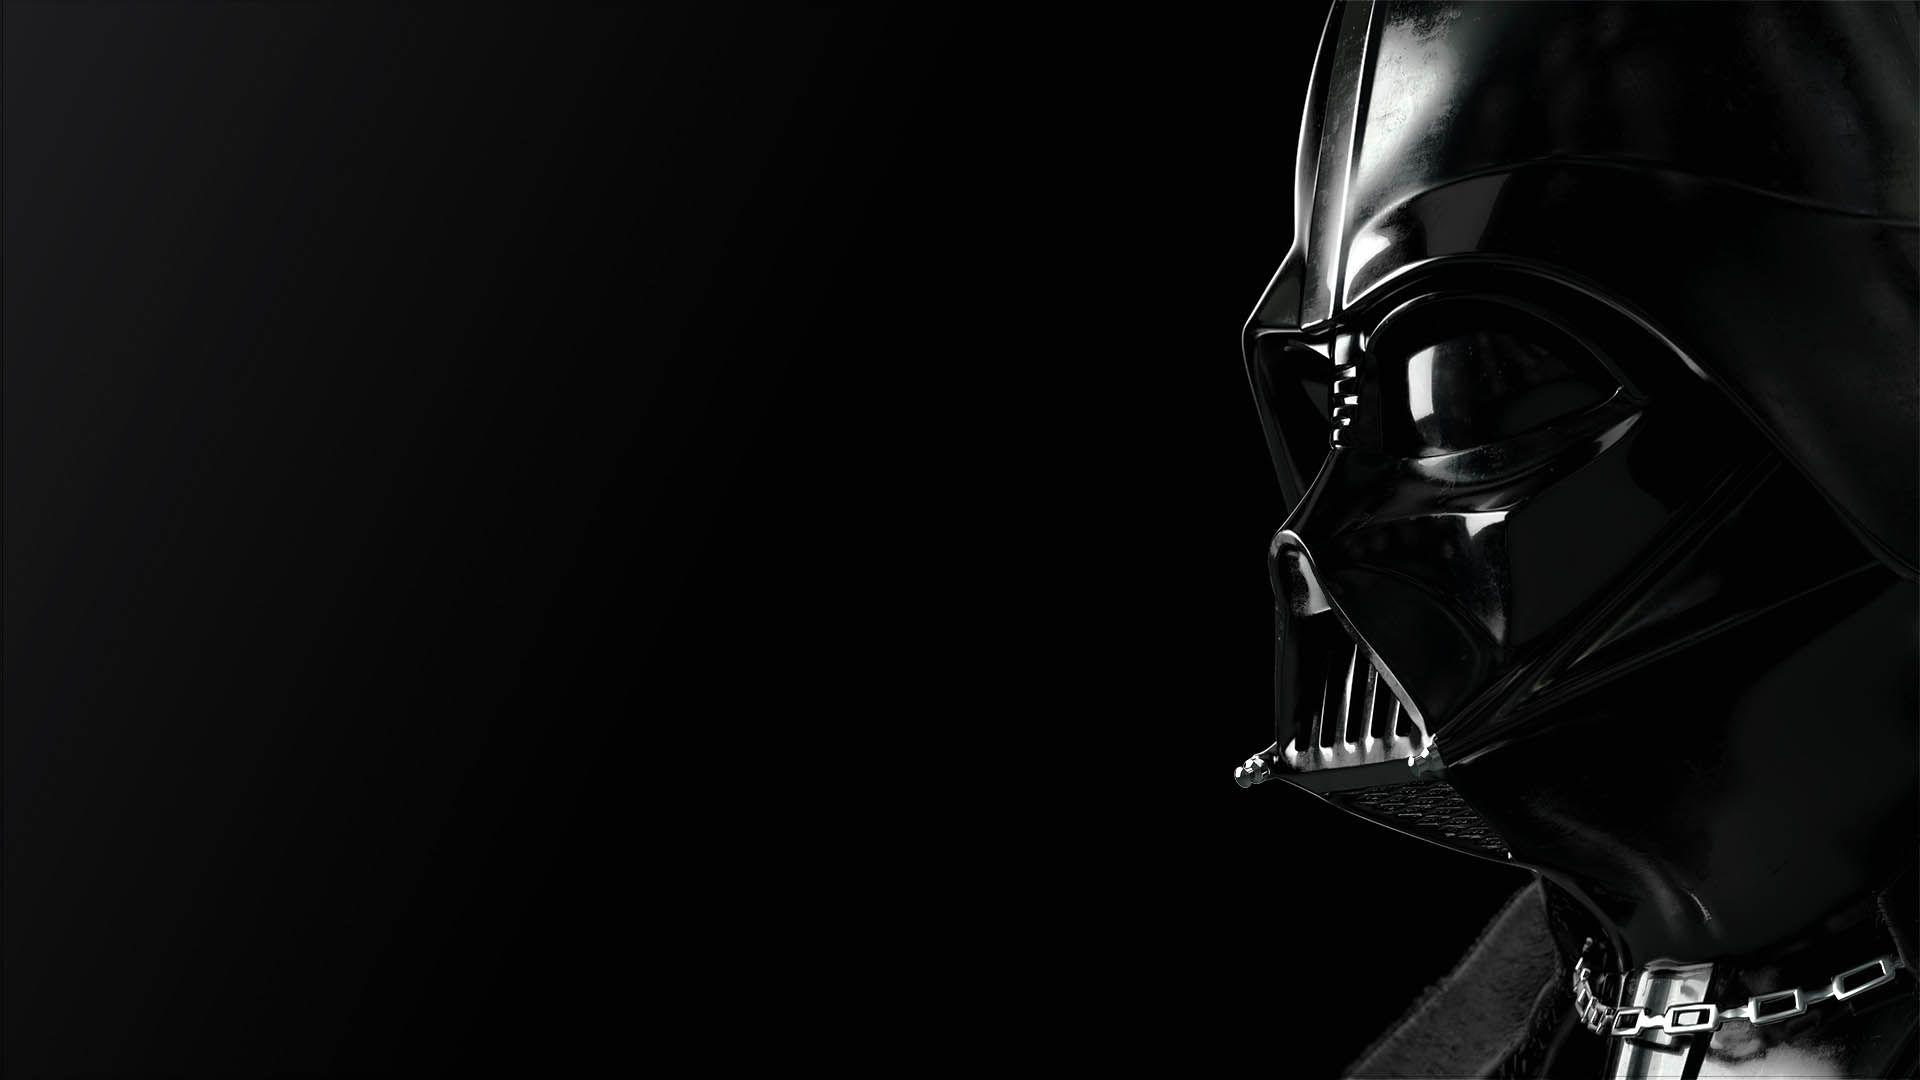 Darth Vader Wallpapers Hd Wallpaper Cave